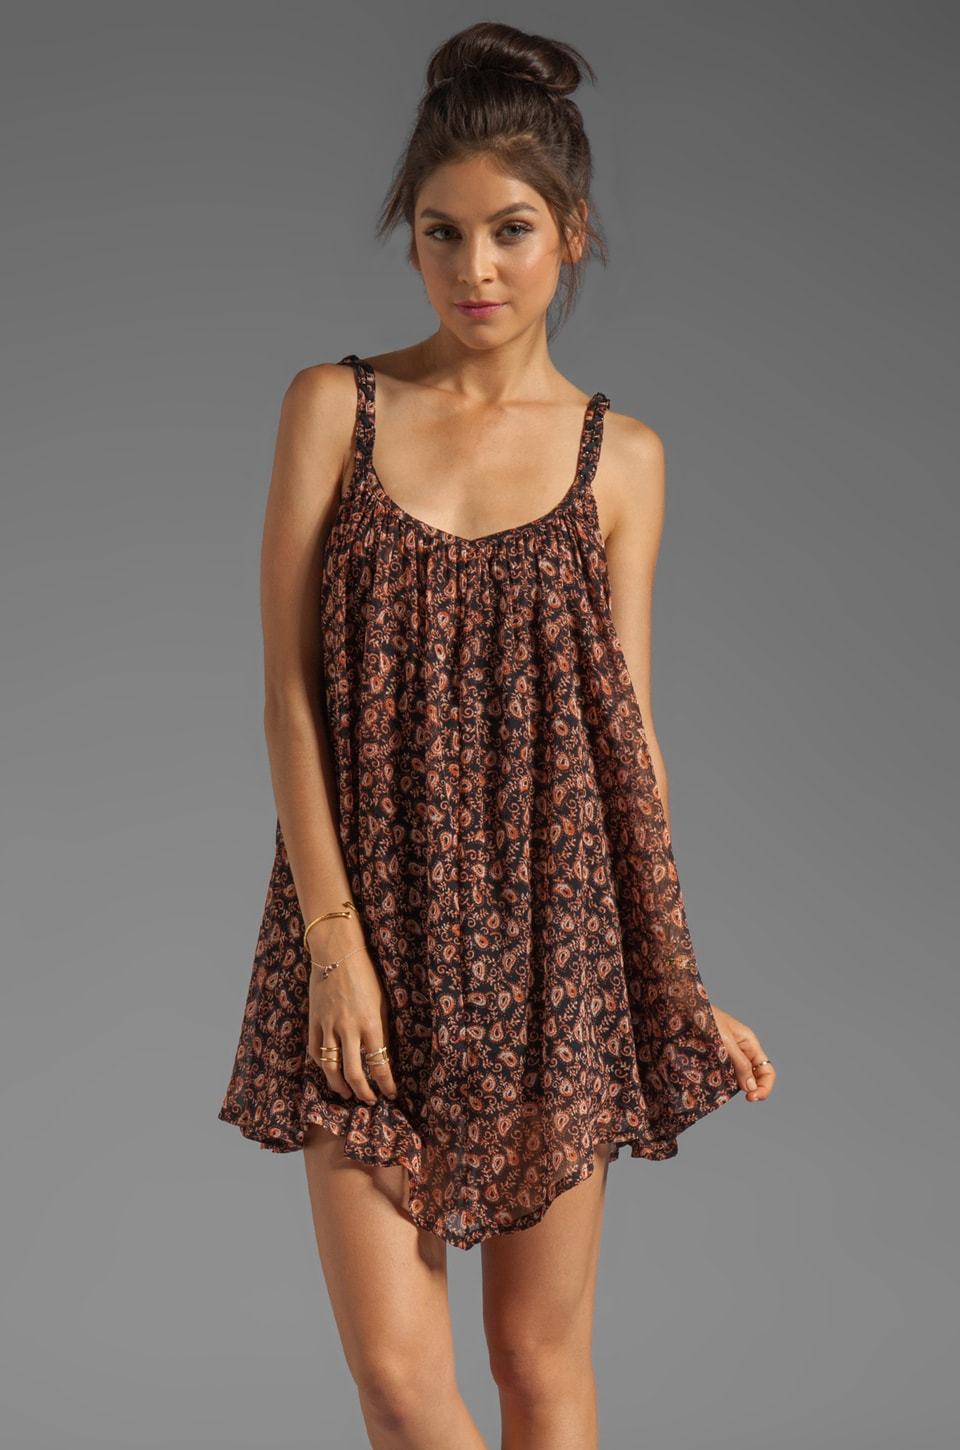 RVCA Armonk Sleeveless Paisley Print Dress with Asymmetrical Hem in Black